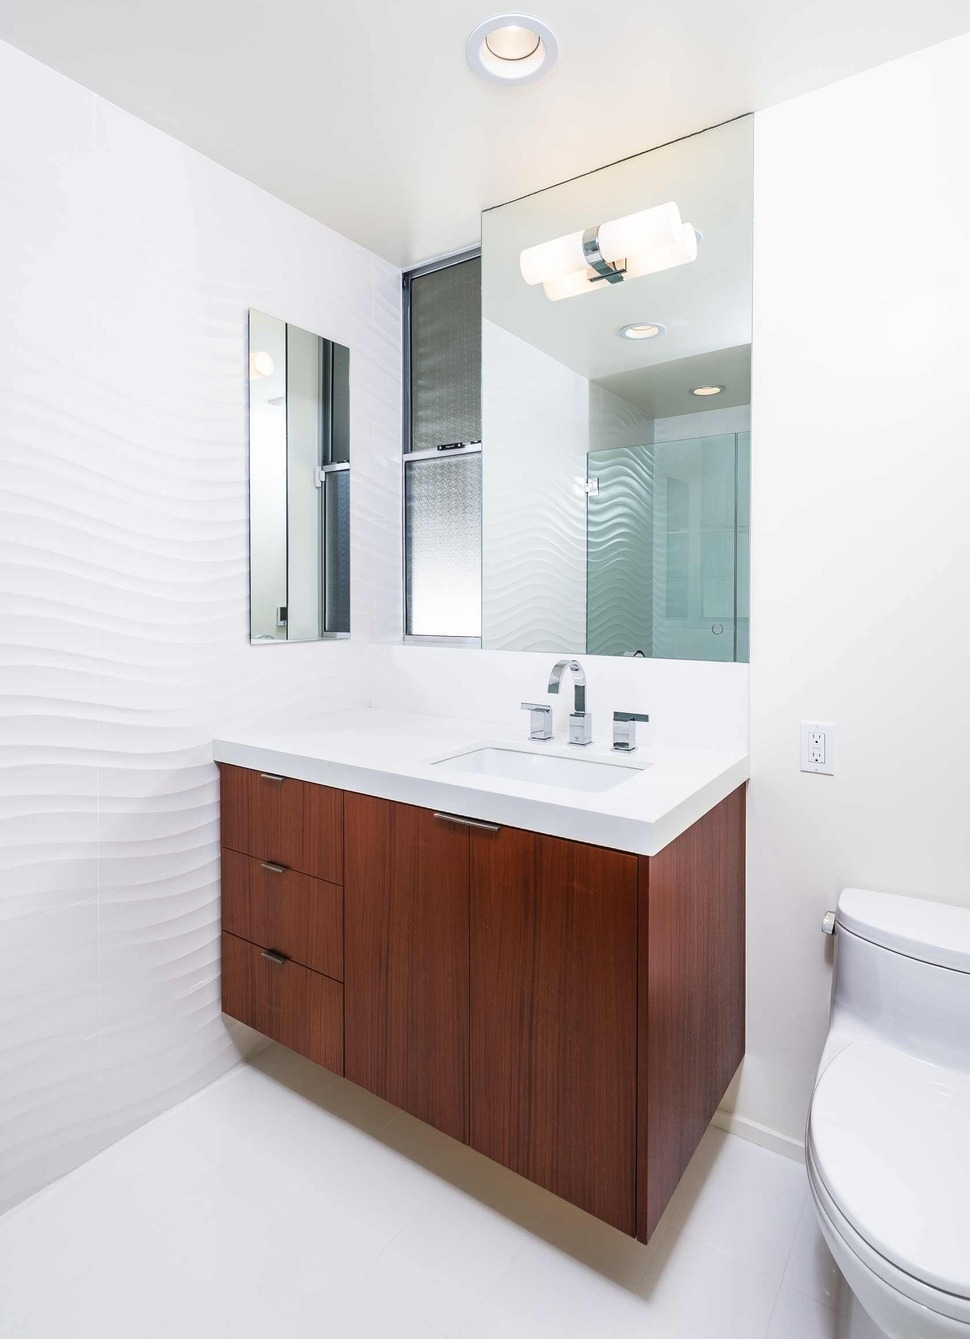 skillful-renovation-iconic-mid-century-los-angeles-residence-22-small-bathroom-thumb-970xauto-20704